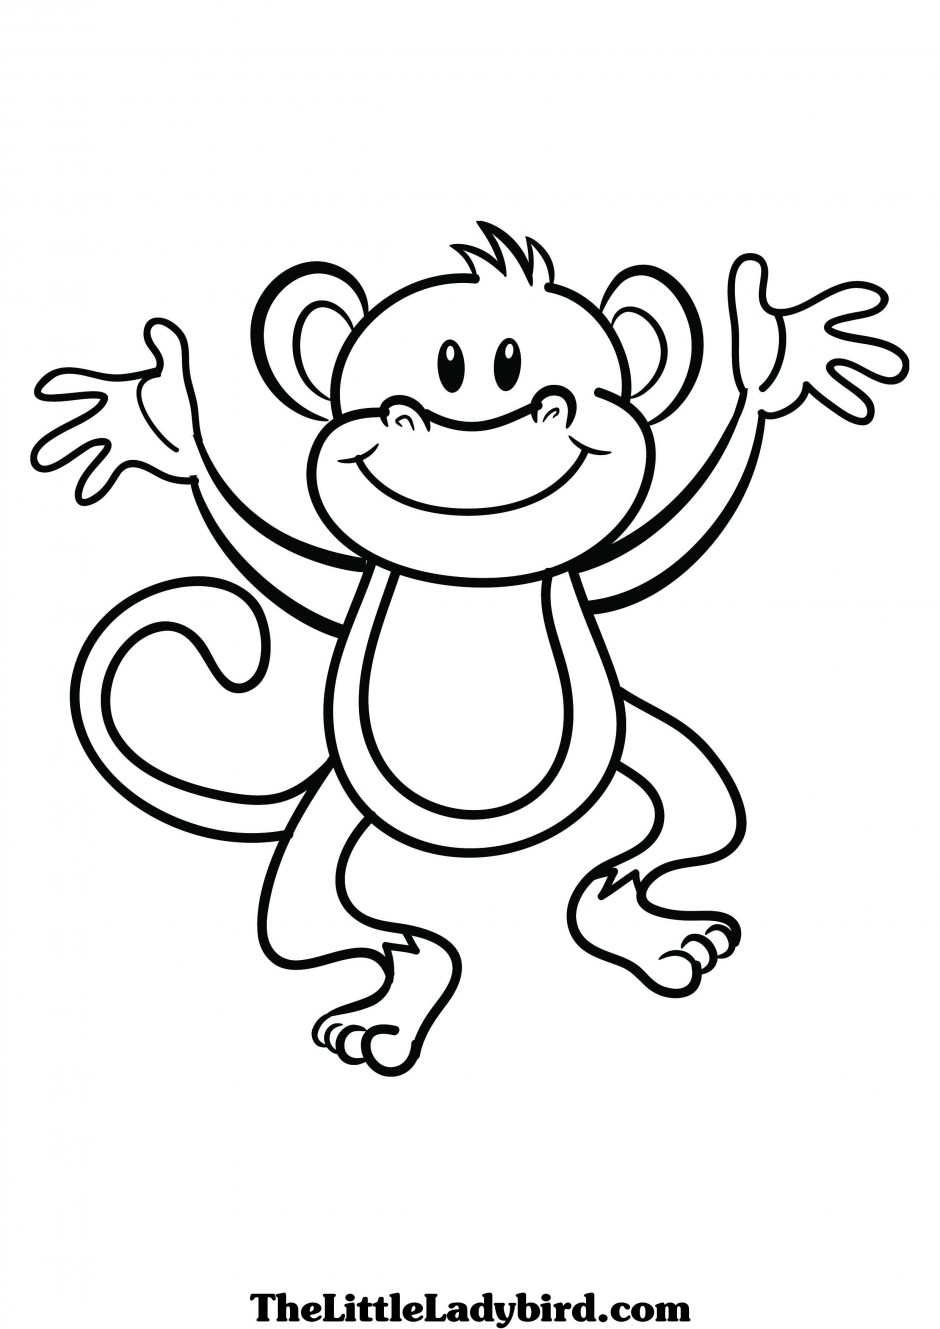 Baboon clipart black and white Clipart And and Baboon Black